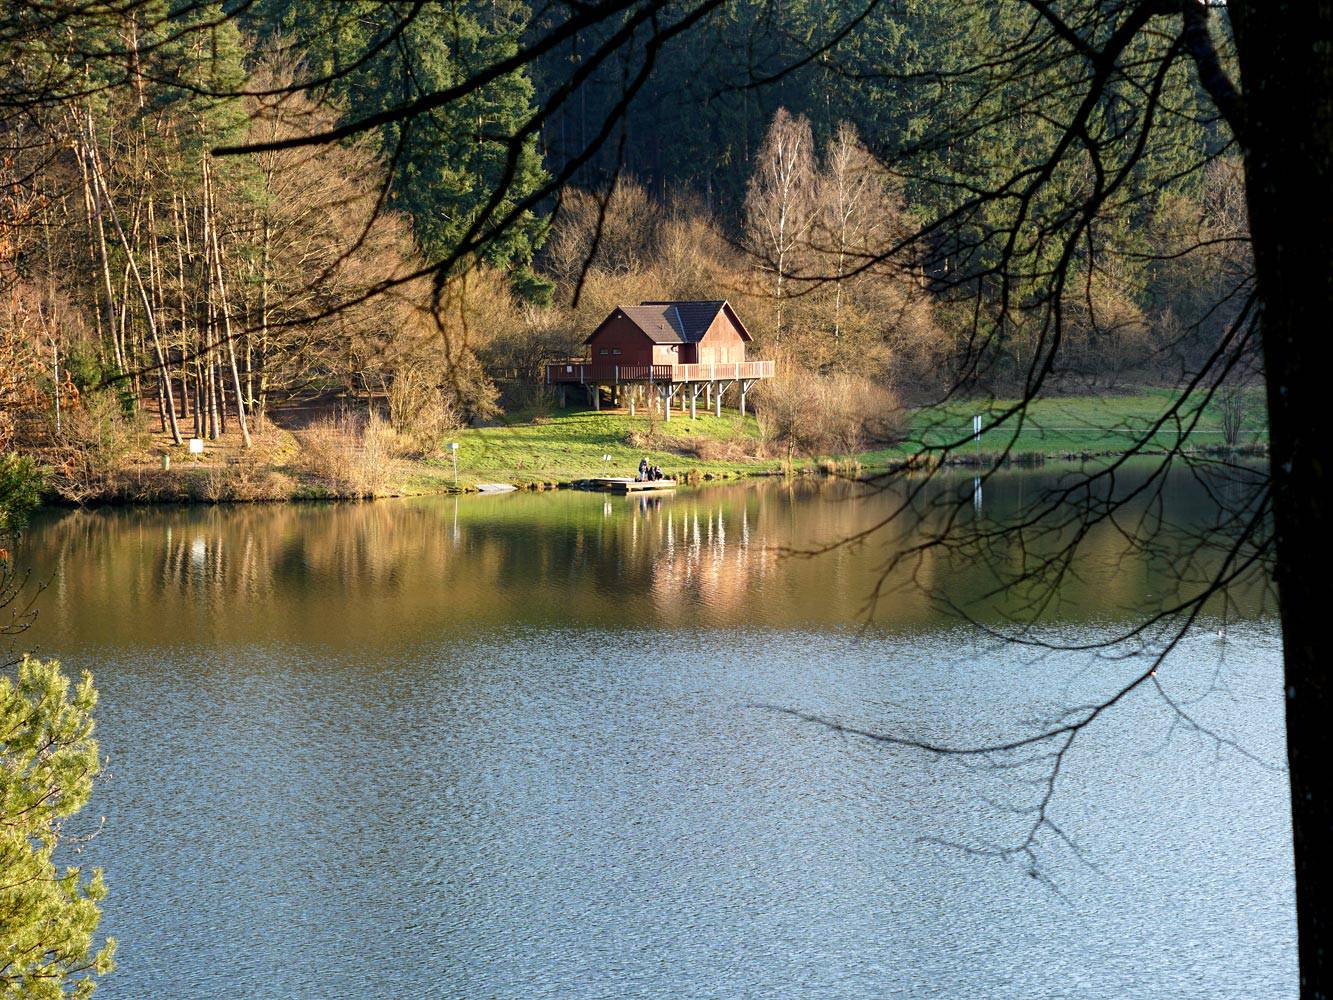 Haus-am-Marbachtal-Stausee